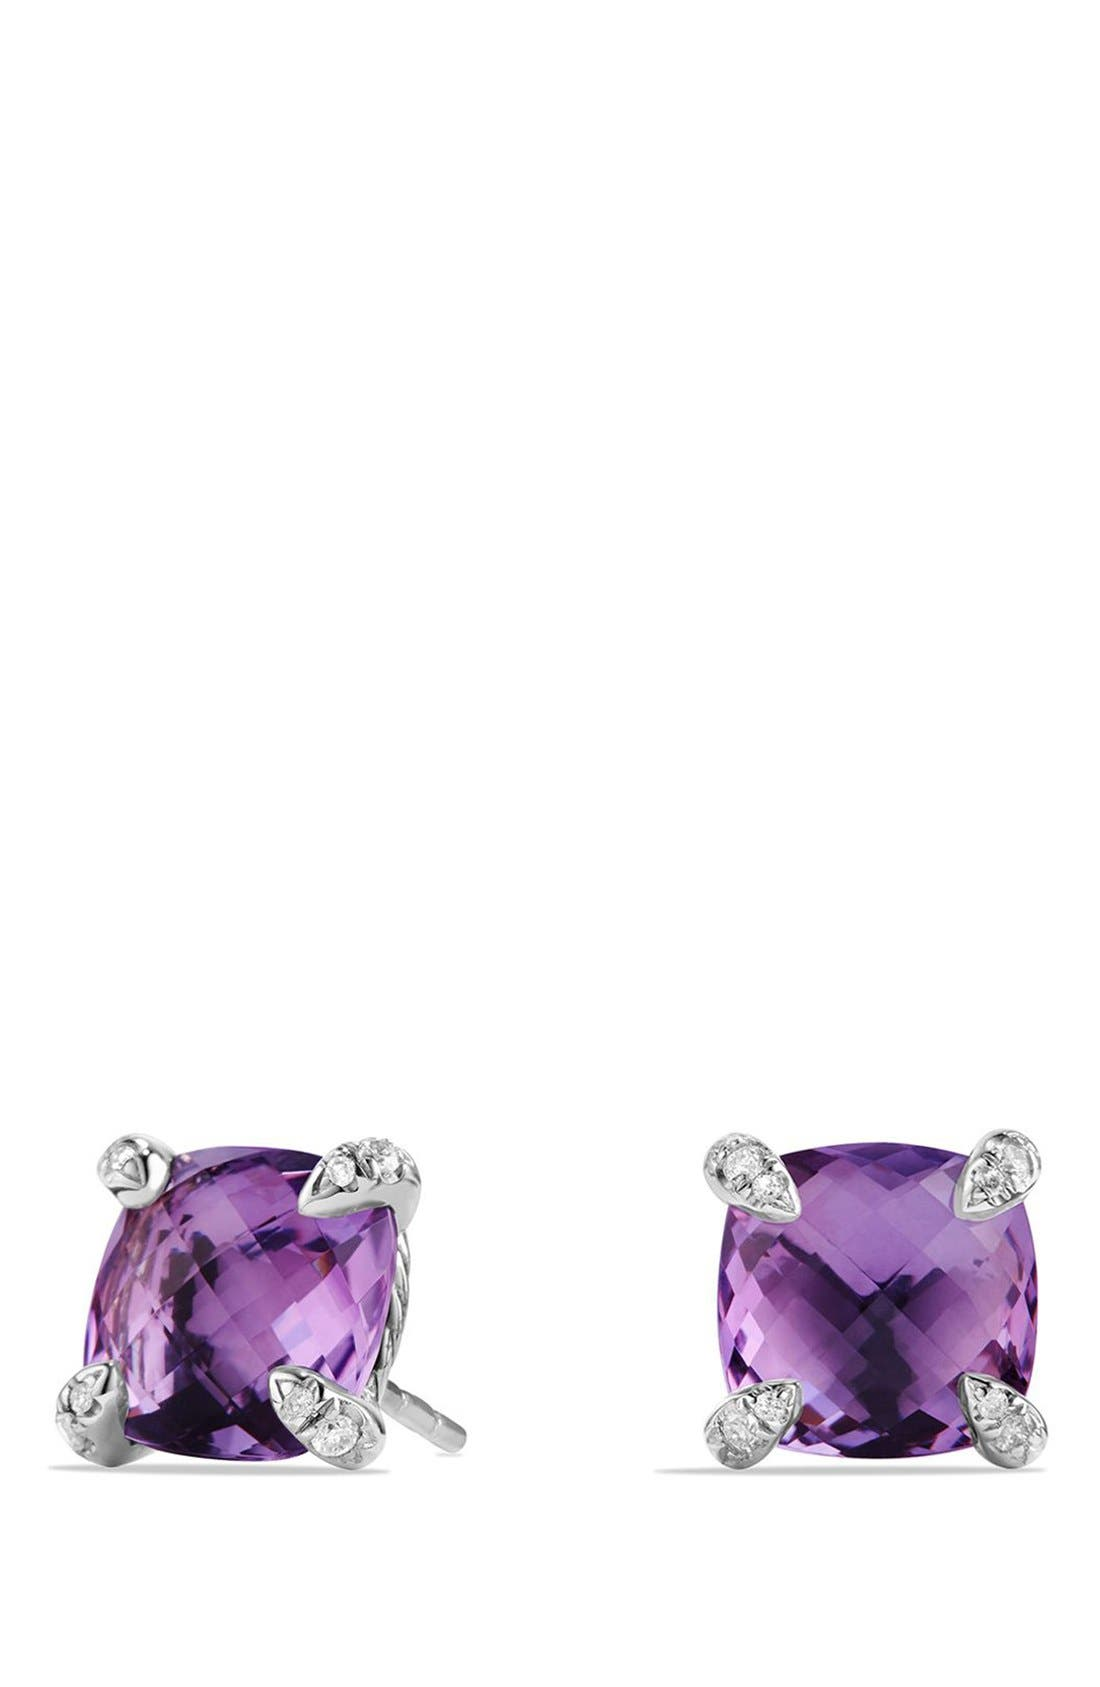 DAVID YURMAN Châtelaine Earrings with Semiprecious Stones and Diamonds